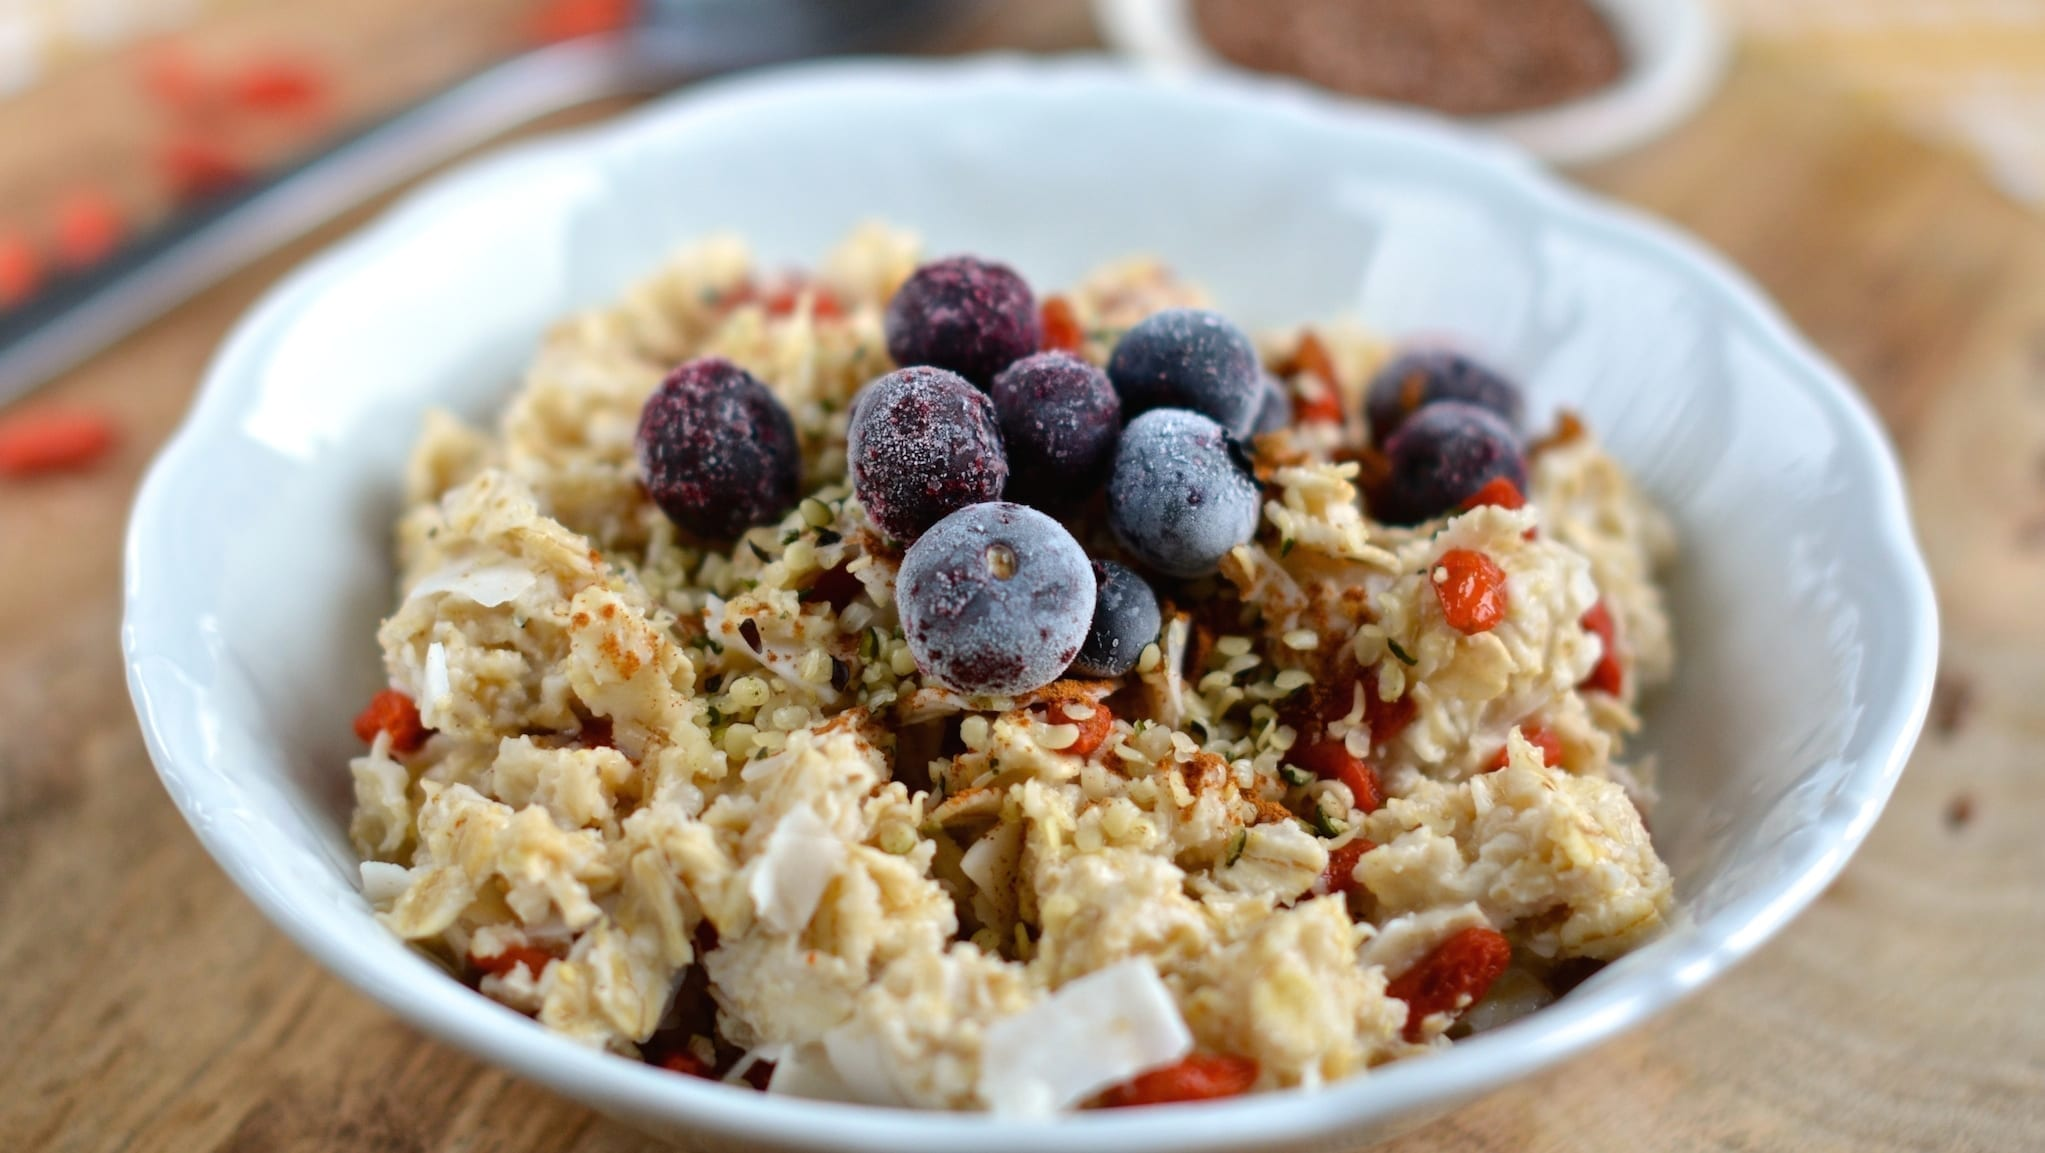 Oatmeal with Blueberries and Coconut